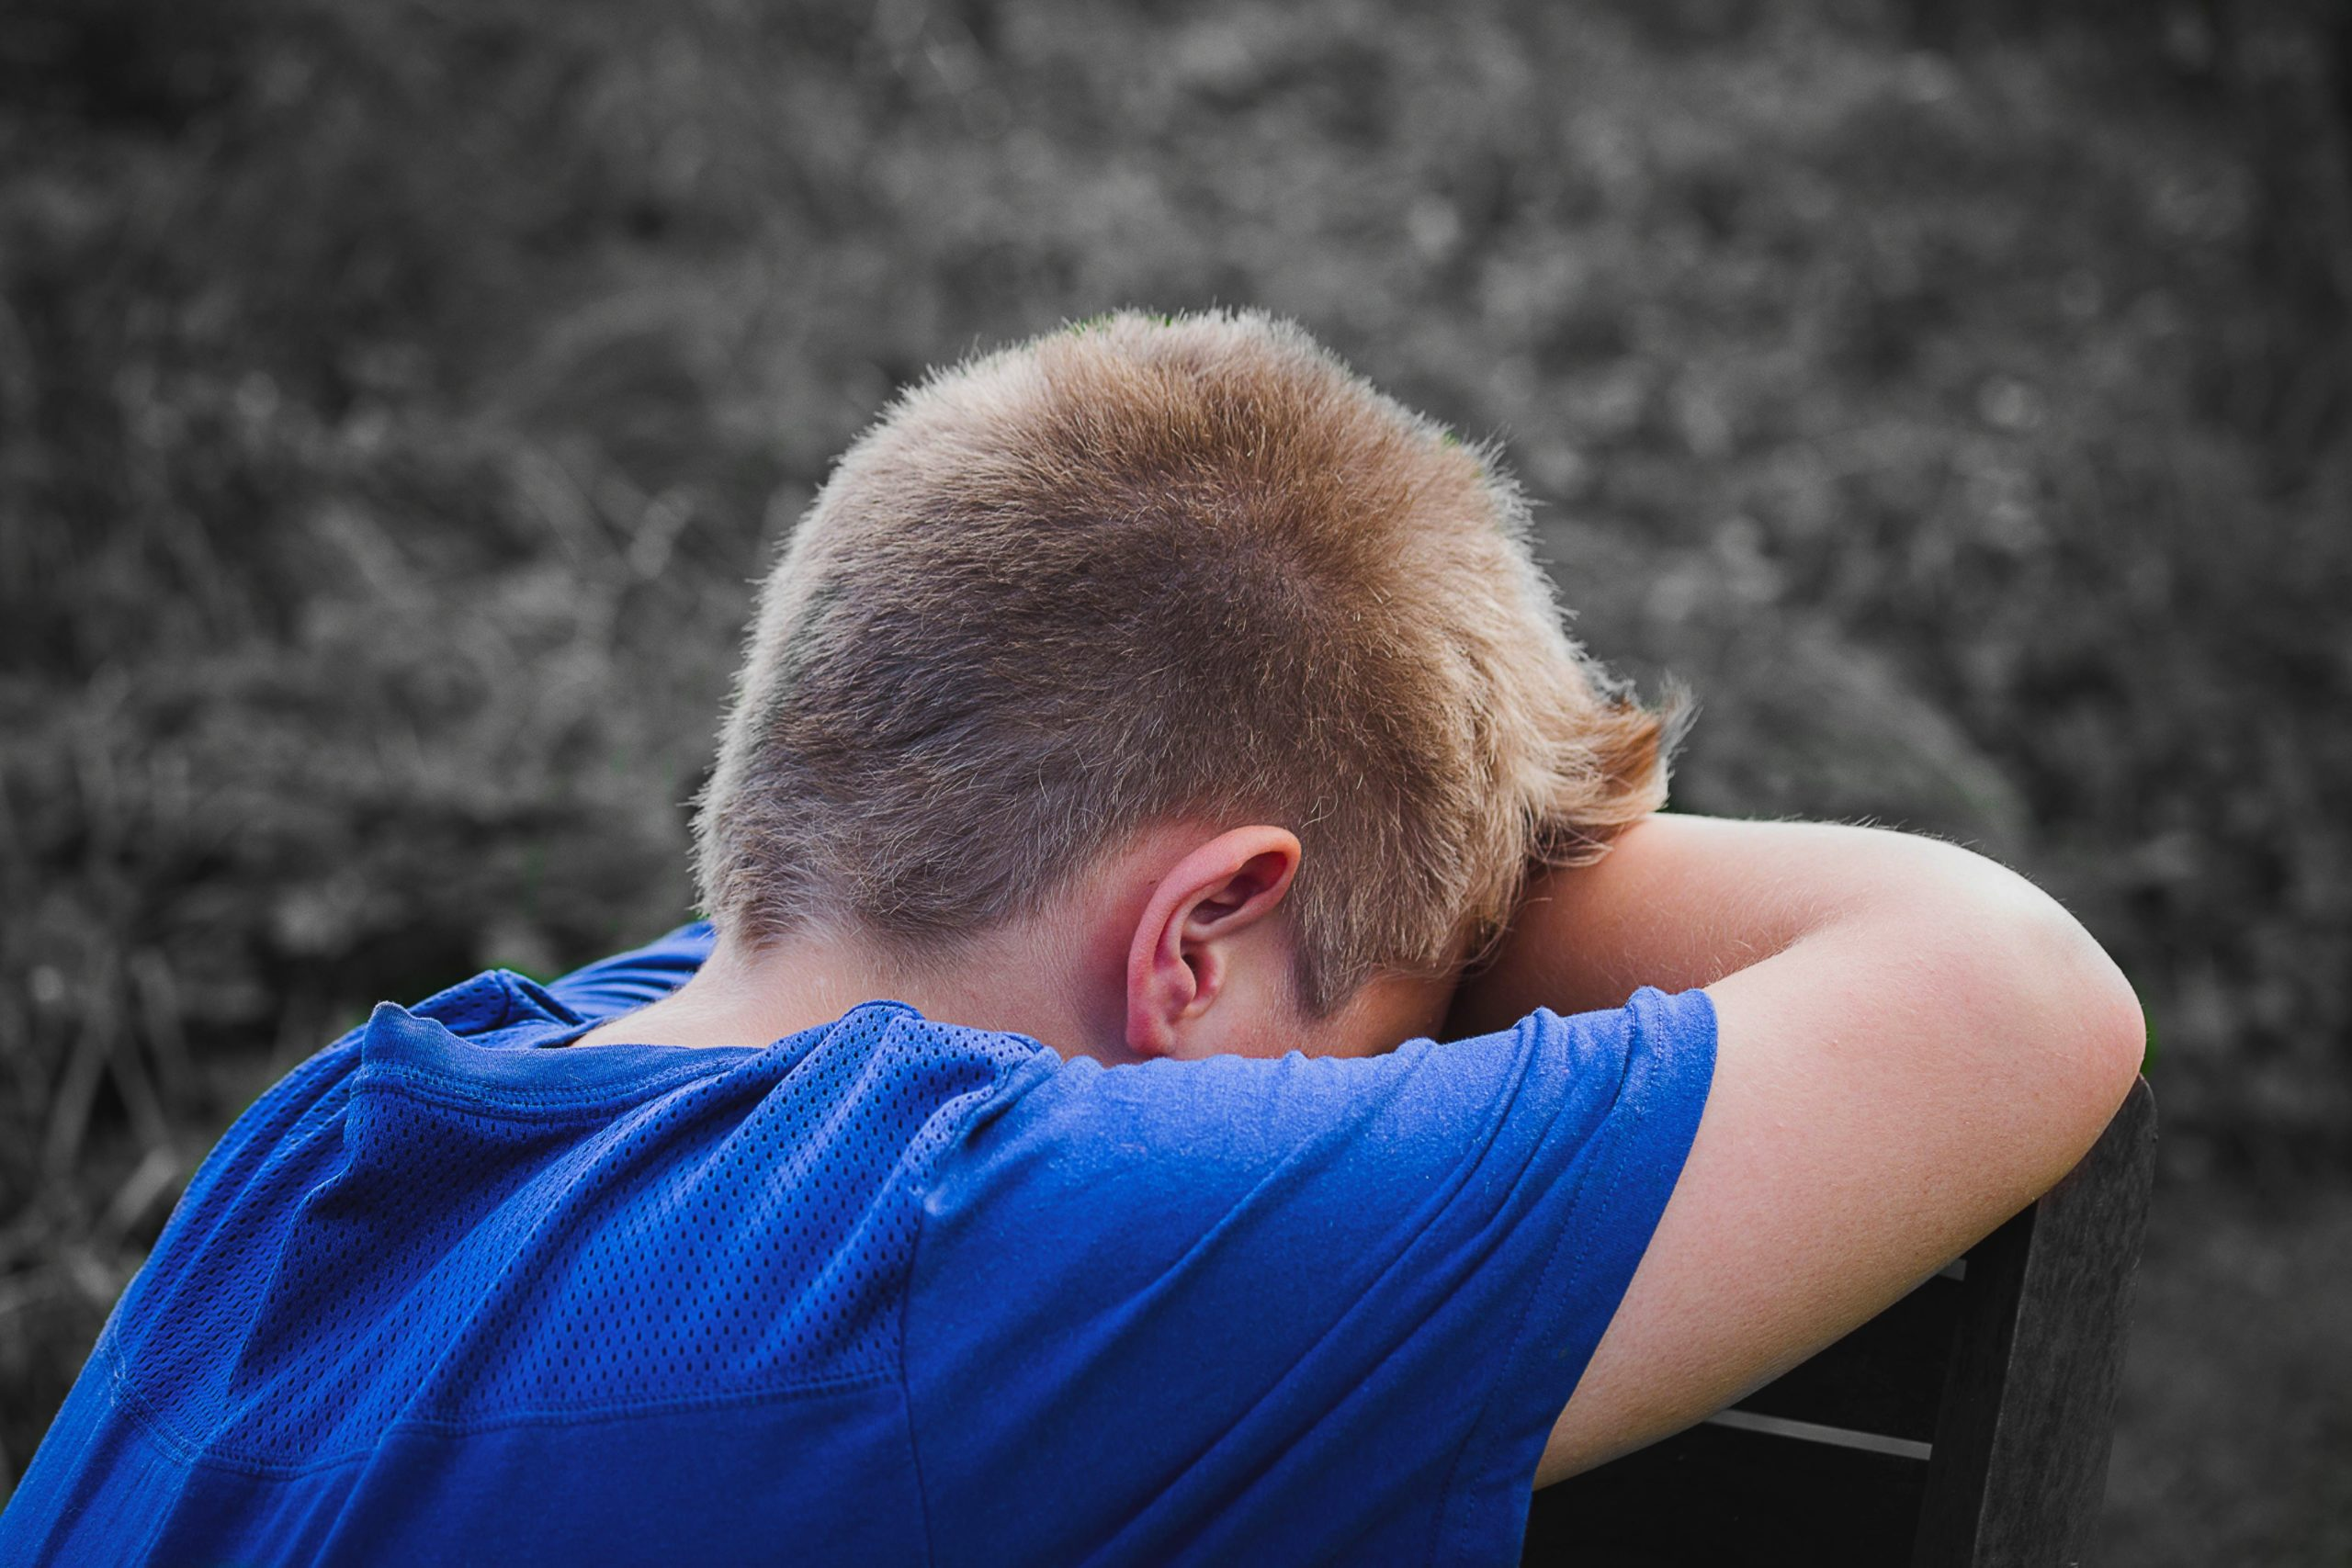 challenging behaviour: a child in a blue top hides their face with their hands